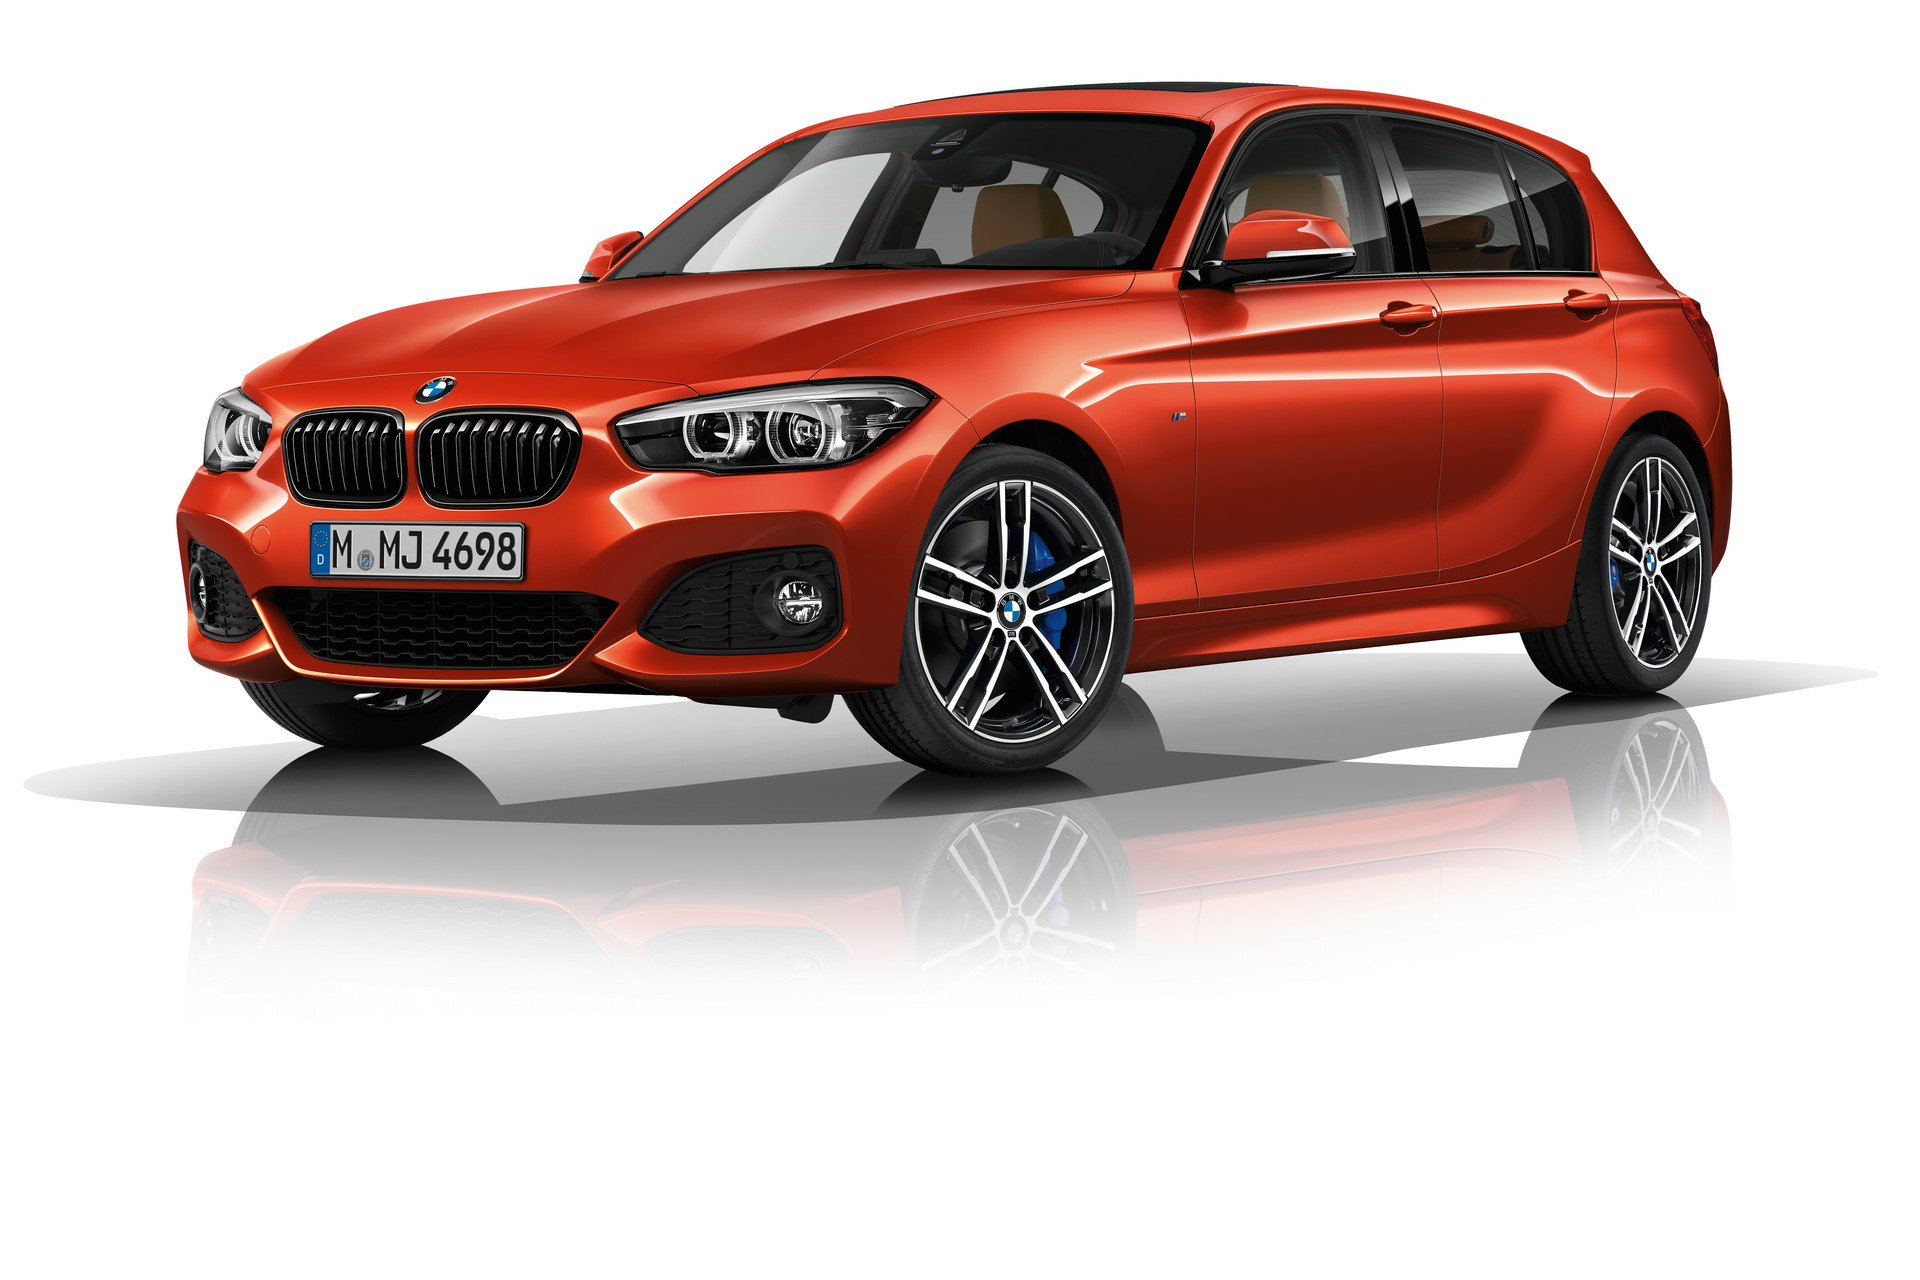 bmw-1-series-edition-m-sport-shadow-1.jpg